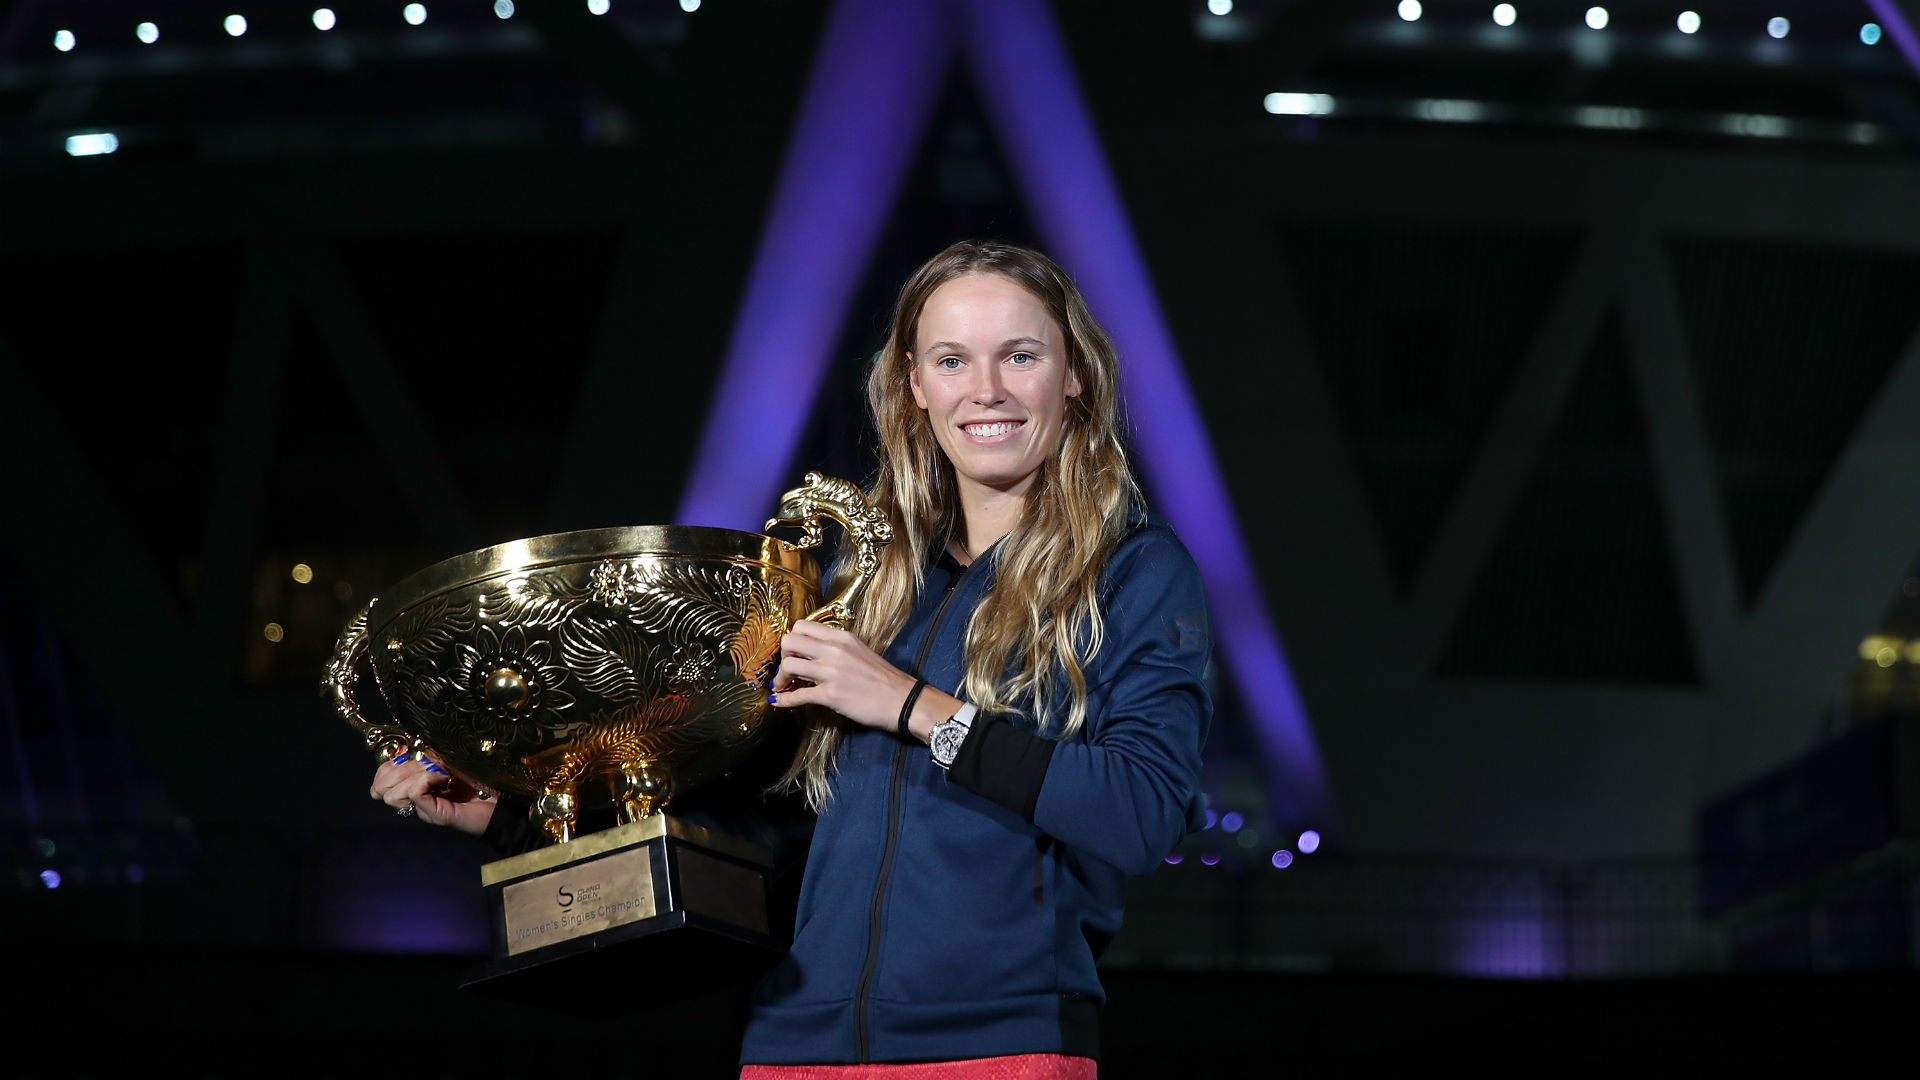 Eight years after winning her first WTA Tour title at the China Open, Caroline Wozniacki got her hands back on the trophy.